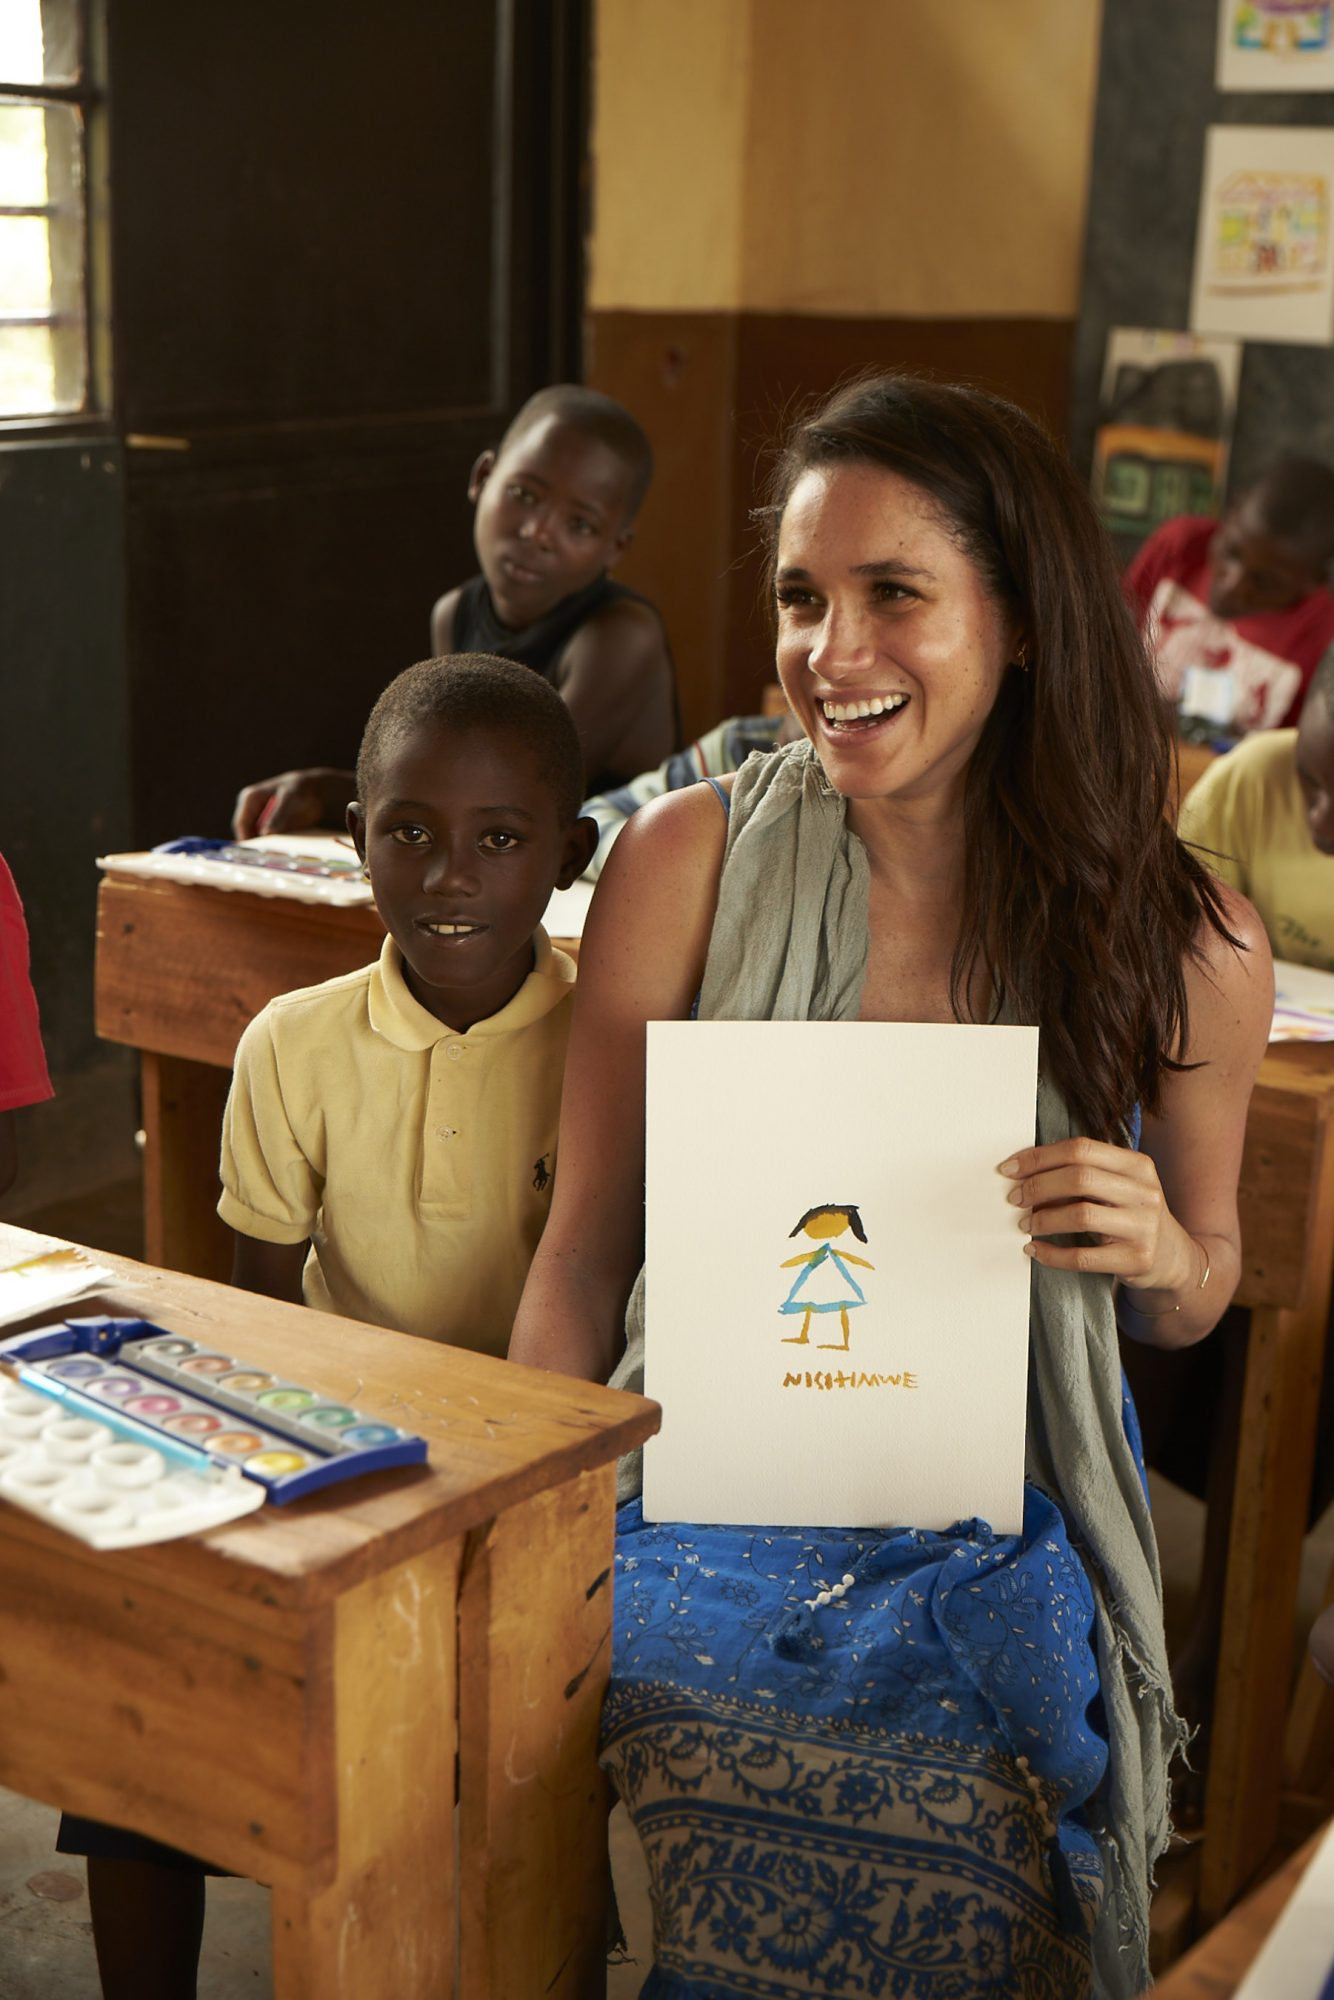 While on a recent trip to Rwanda, actor and World Vision Global Ambassador Meghan Markle taught a group of students to paint with watercolours, using clean water recently provided to their community. This became the basis of The Watercolours Project, which has already raised enough money to provide an entire community with clean water. (Photo credit: Gabor Jurina) (CNW Group/World Vision Canada)